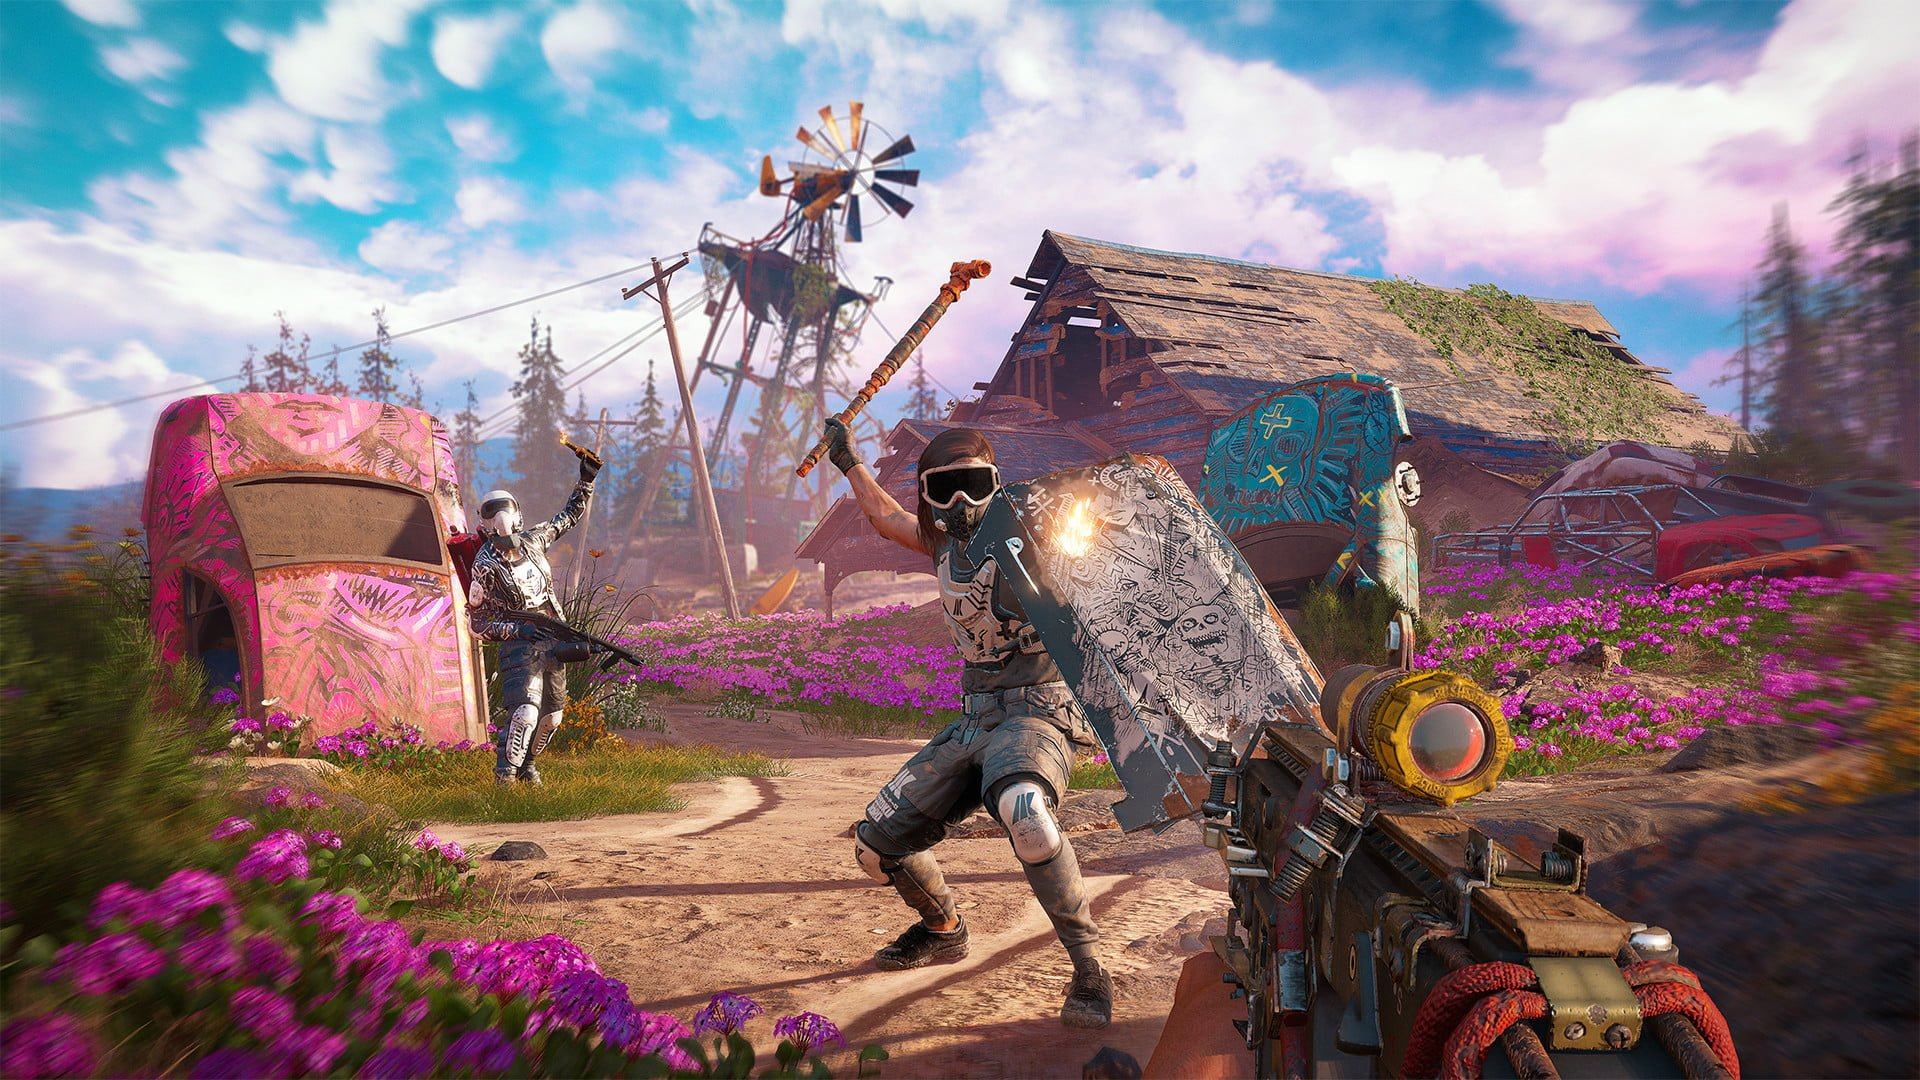 The minimum and recommend PC requirements for Far Cry: New Dawn are now available for review.